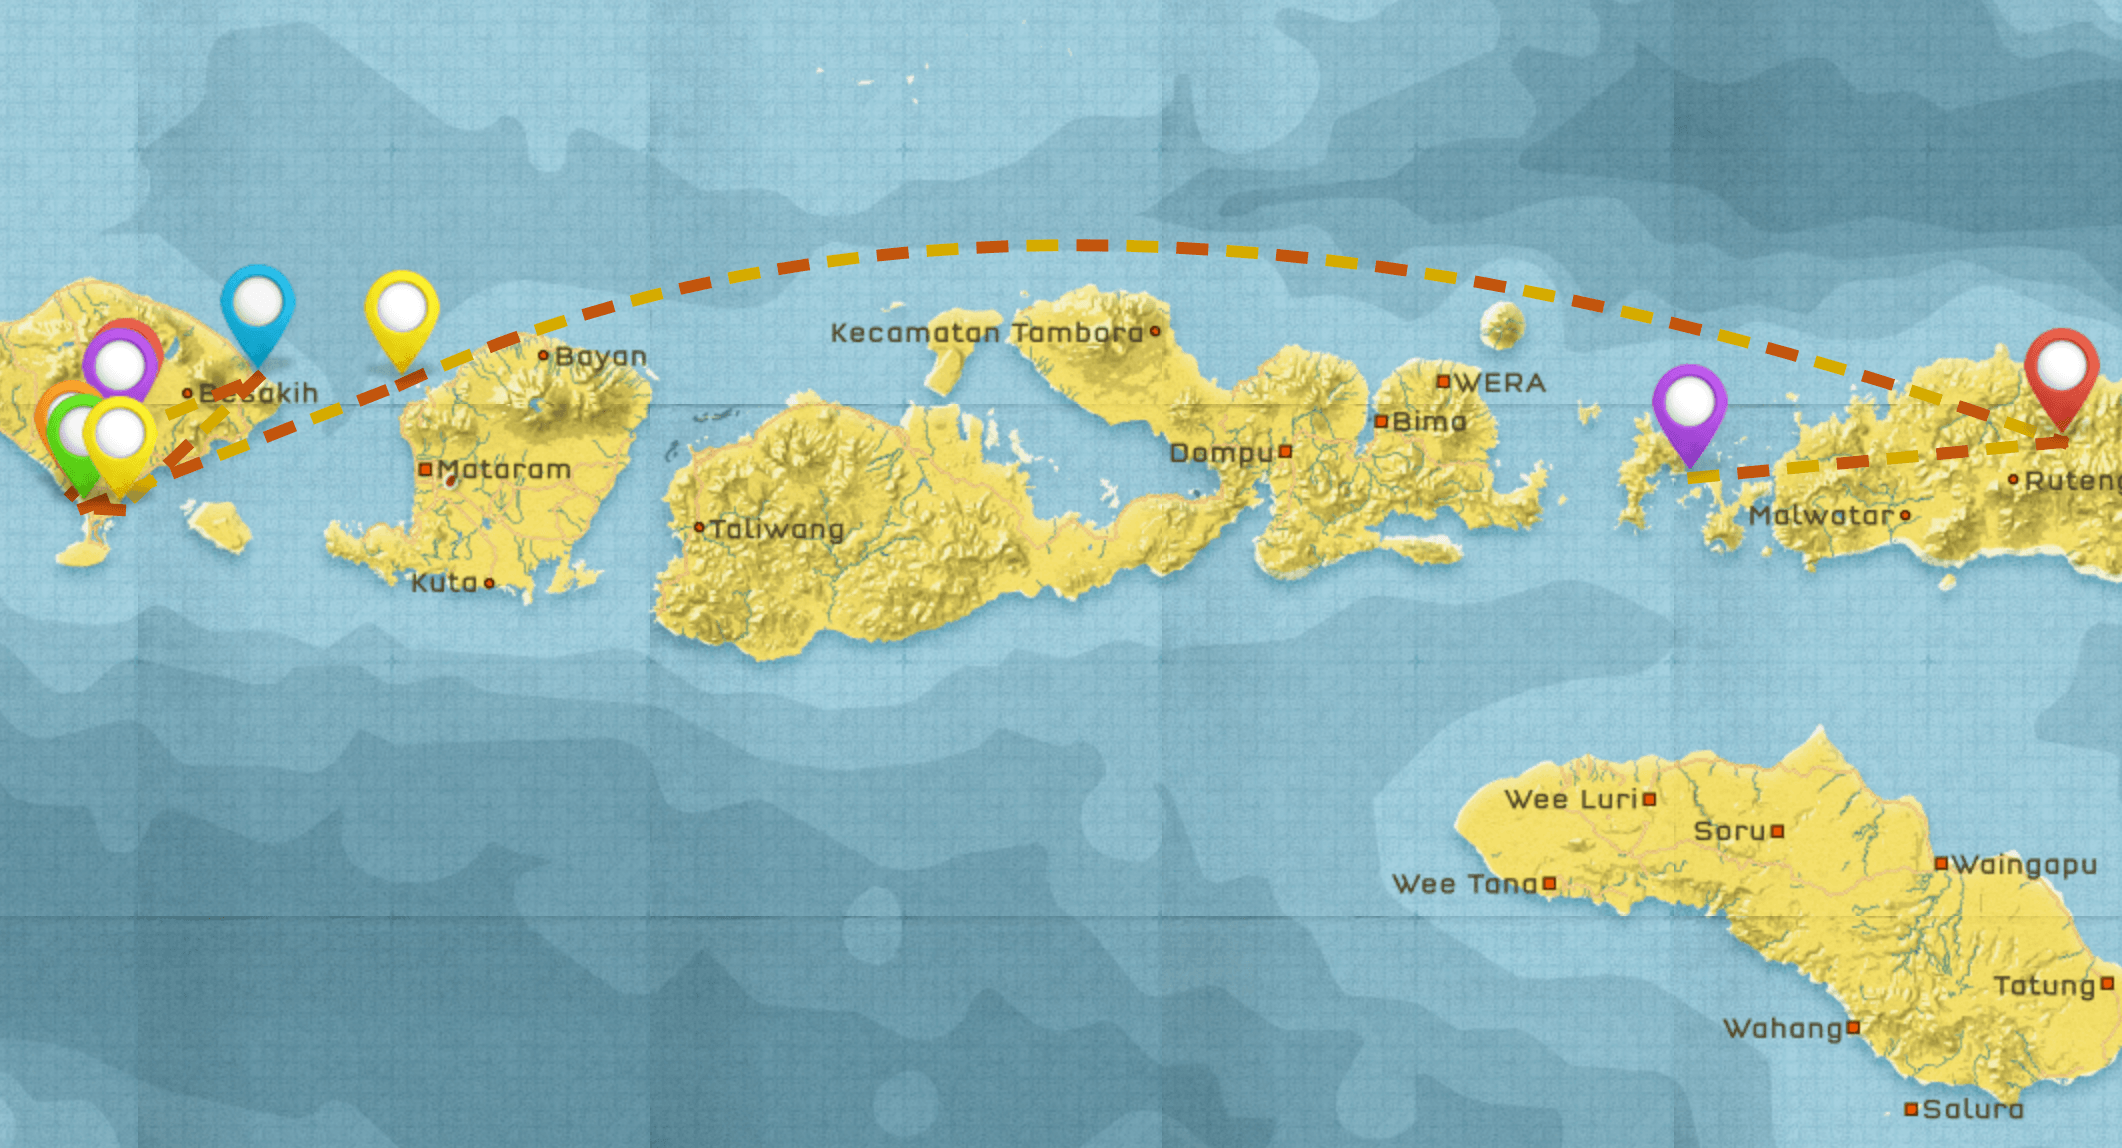 Bali to Flores Indonesia Itinerary #3